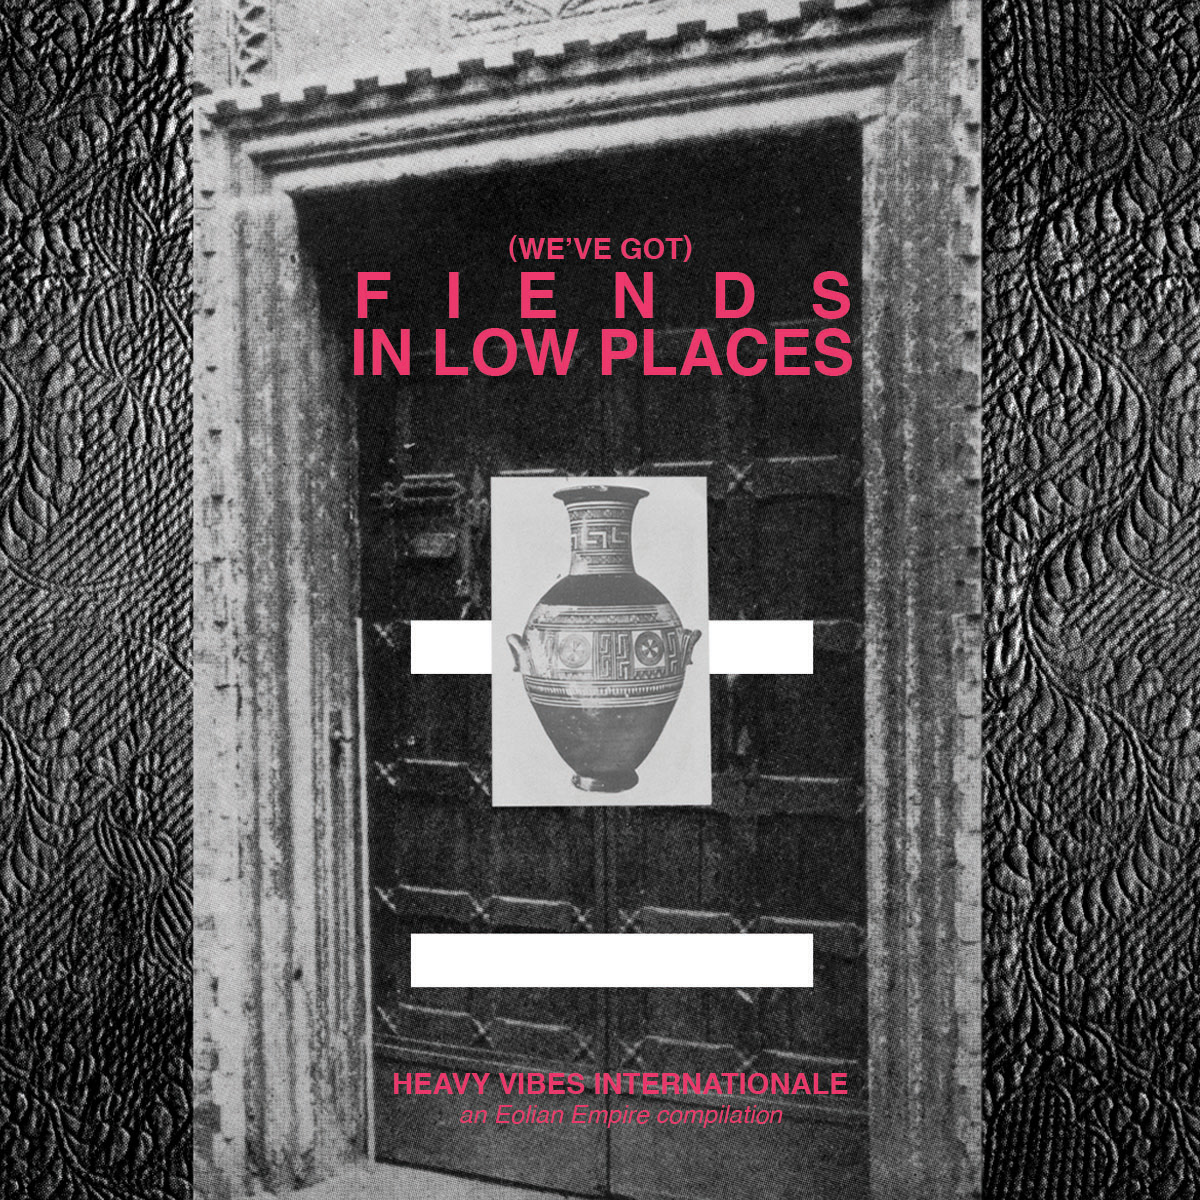 weve-got-friends-in-low-places